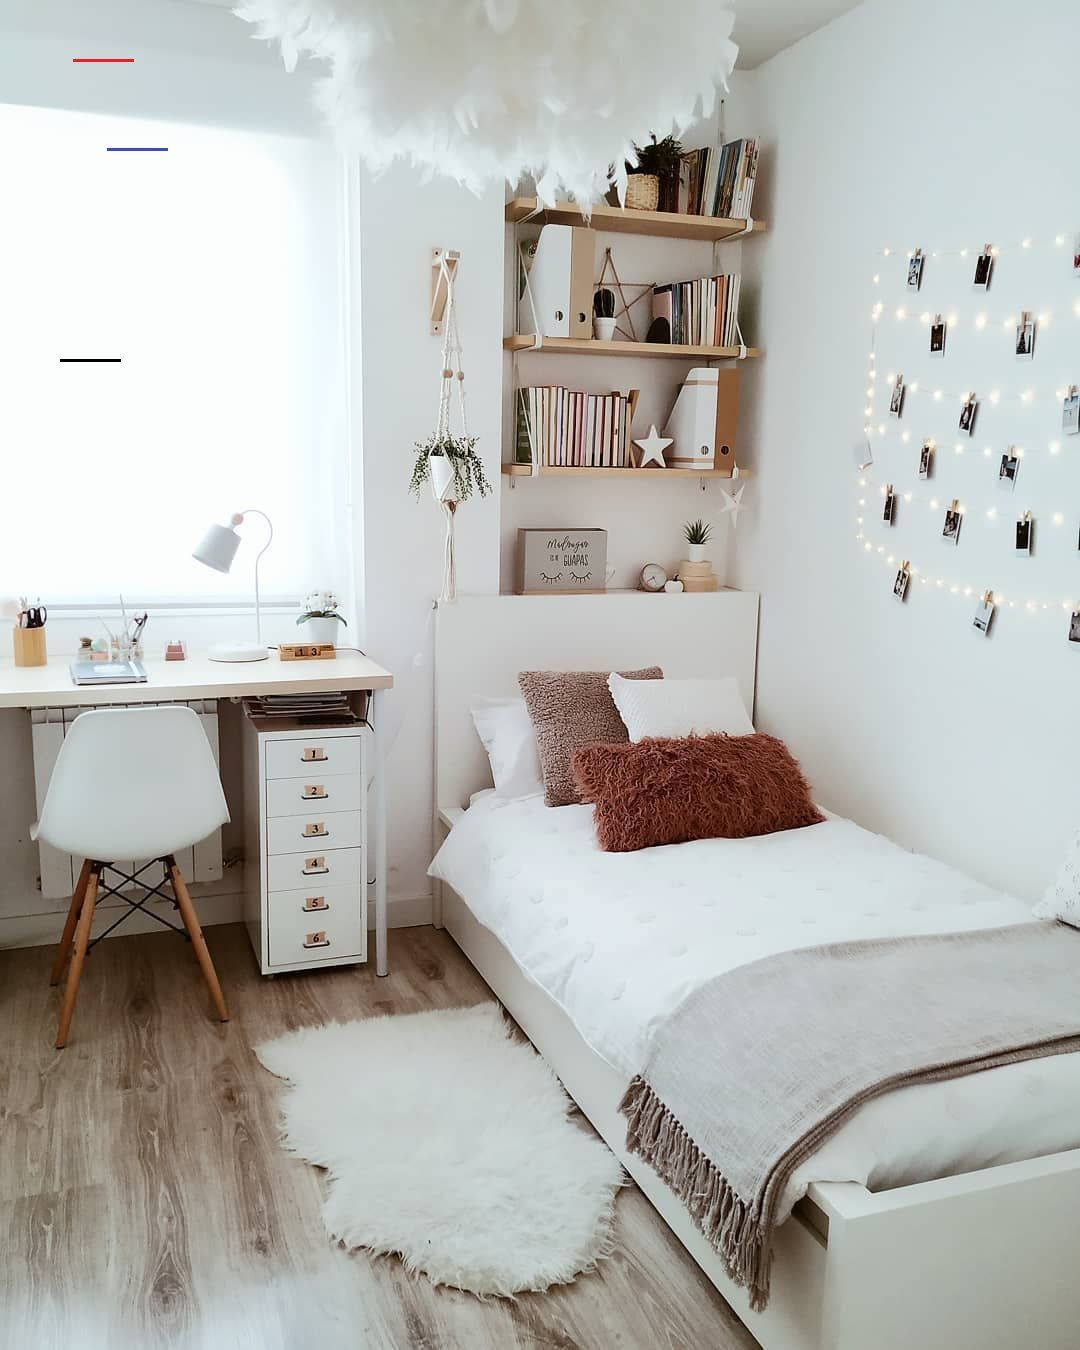 Zimmer Deko Room Inspiration Bedroom Bedroom Decor Room Decor